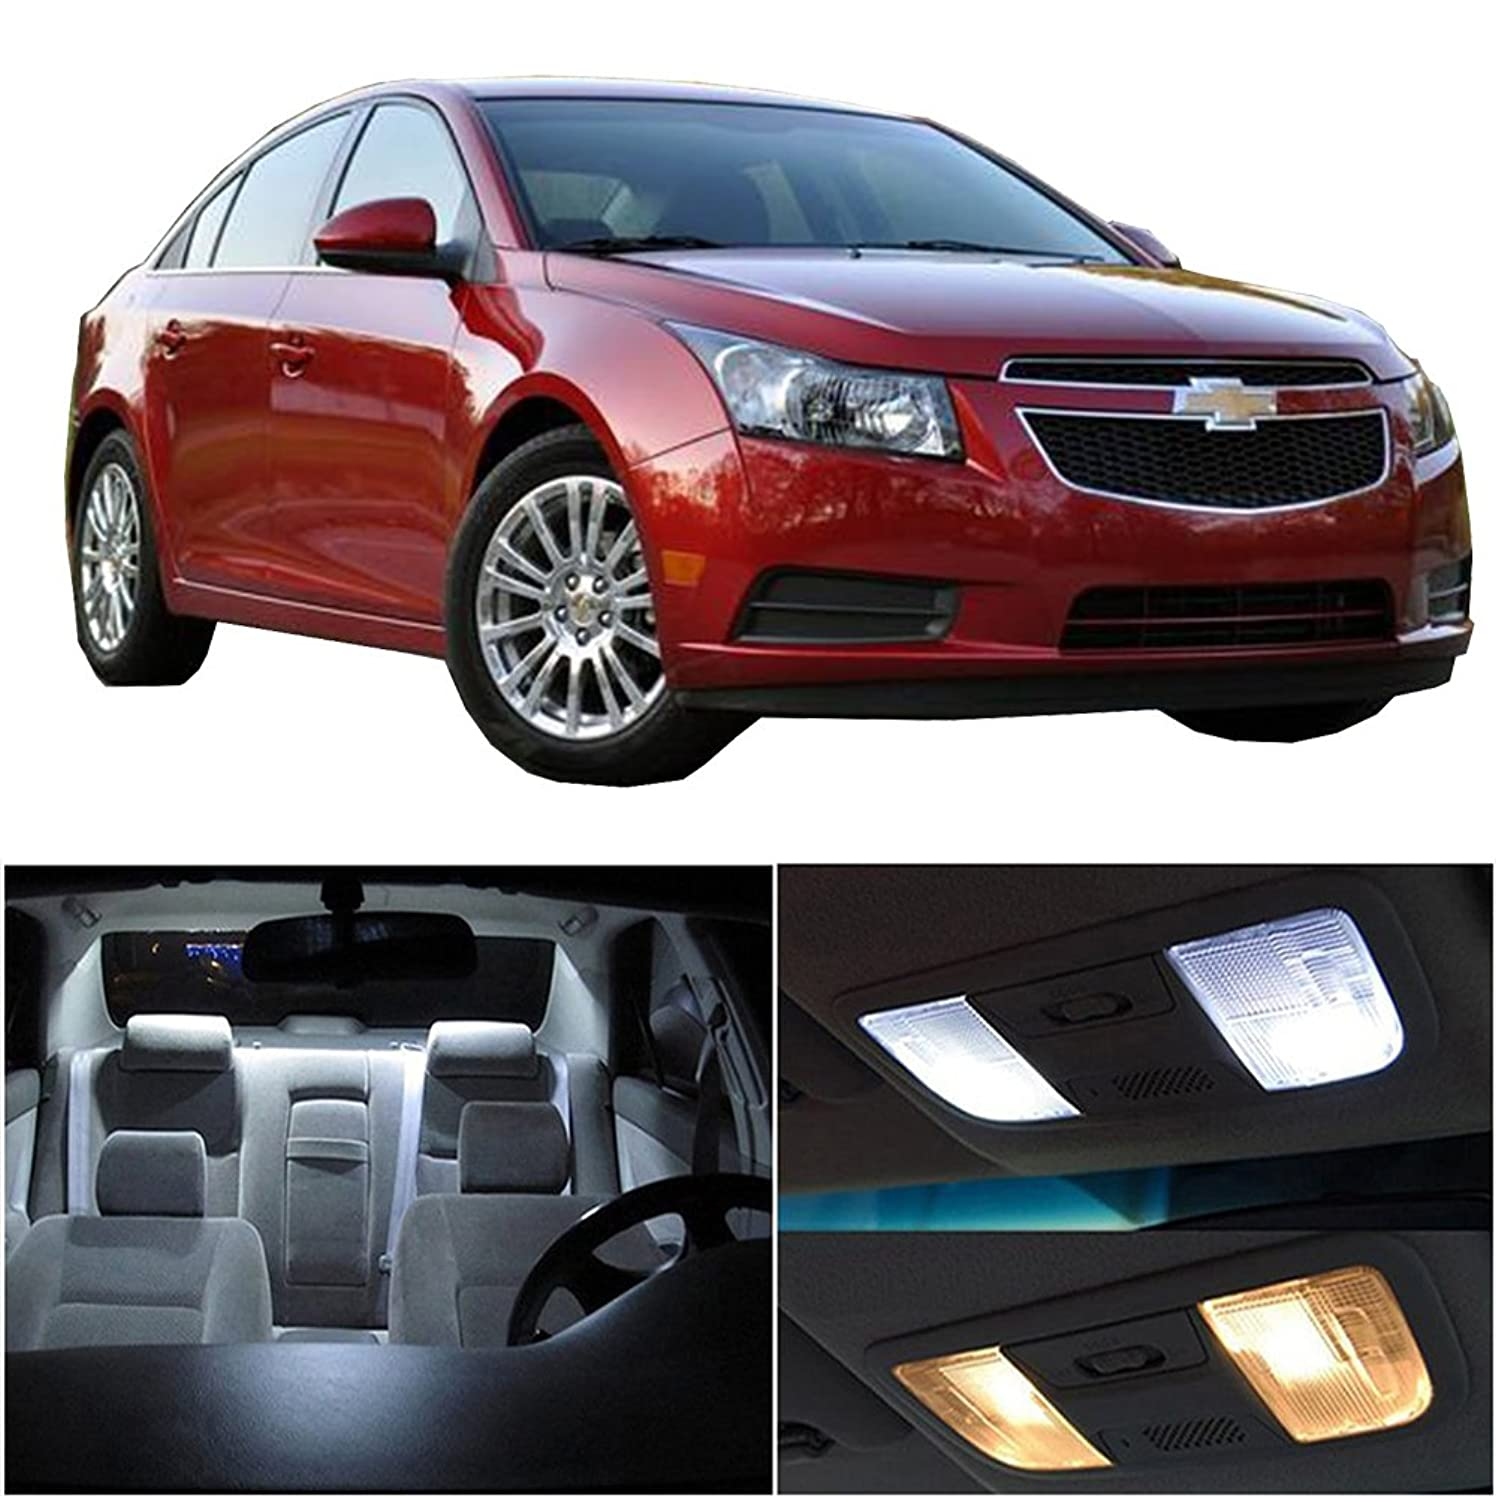 cciyu 11 Pack White LED Bulb LED Interior Lights Accessories Replacement Package Kit Replacement fit for 2014-2016 Chevy Cruze